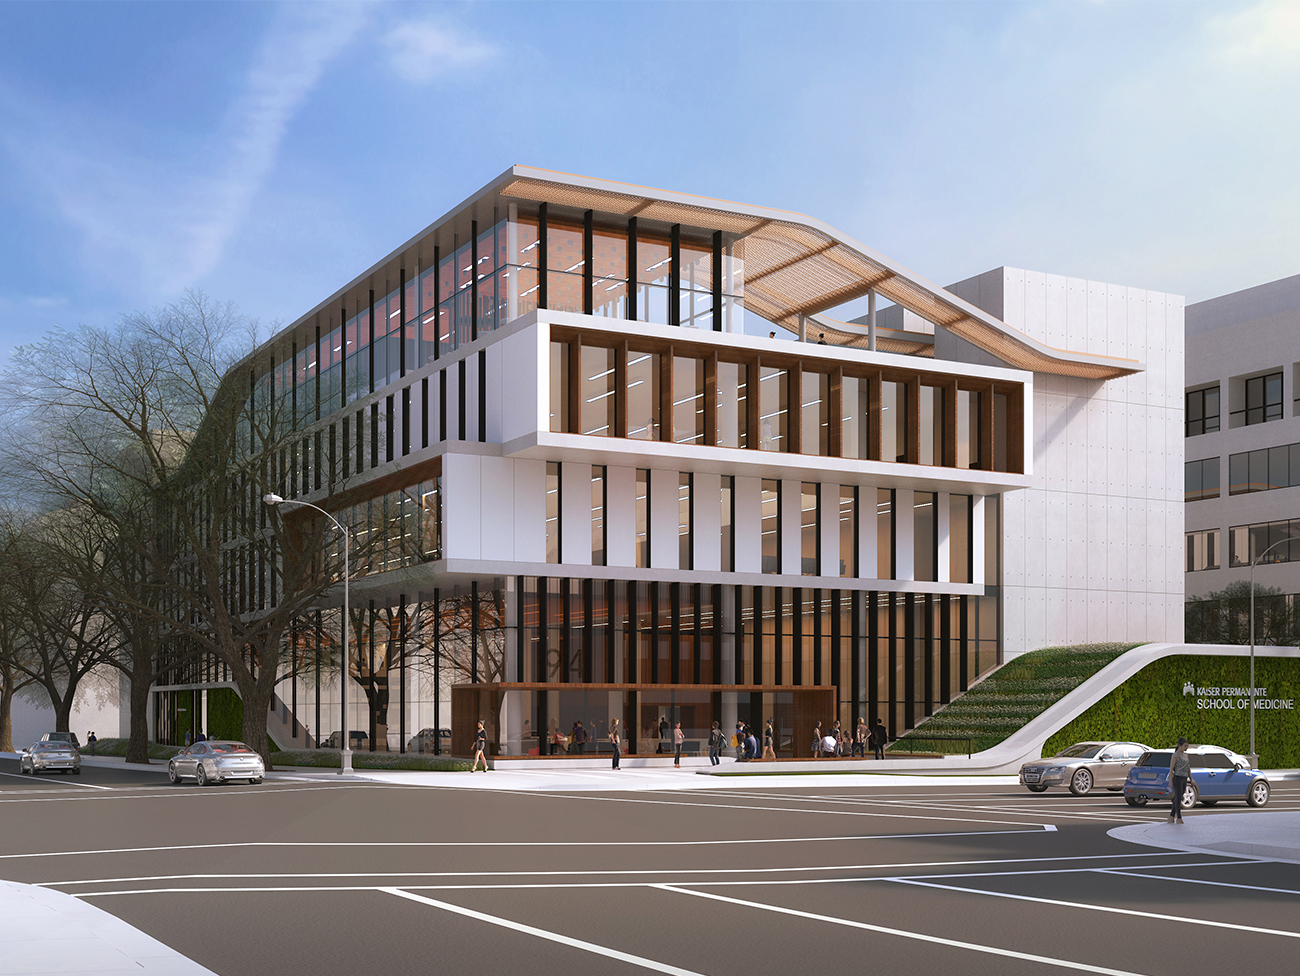 Rendering of the Kaiser Permanente Bernard J. Tyson School of Medicine.